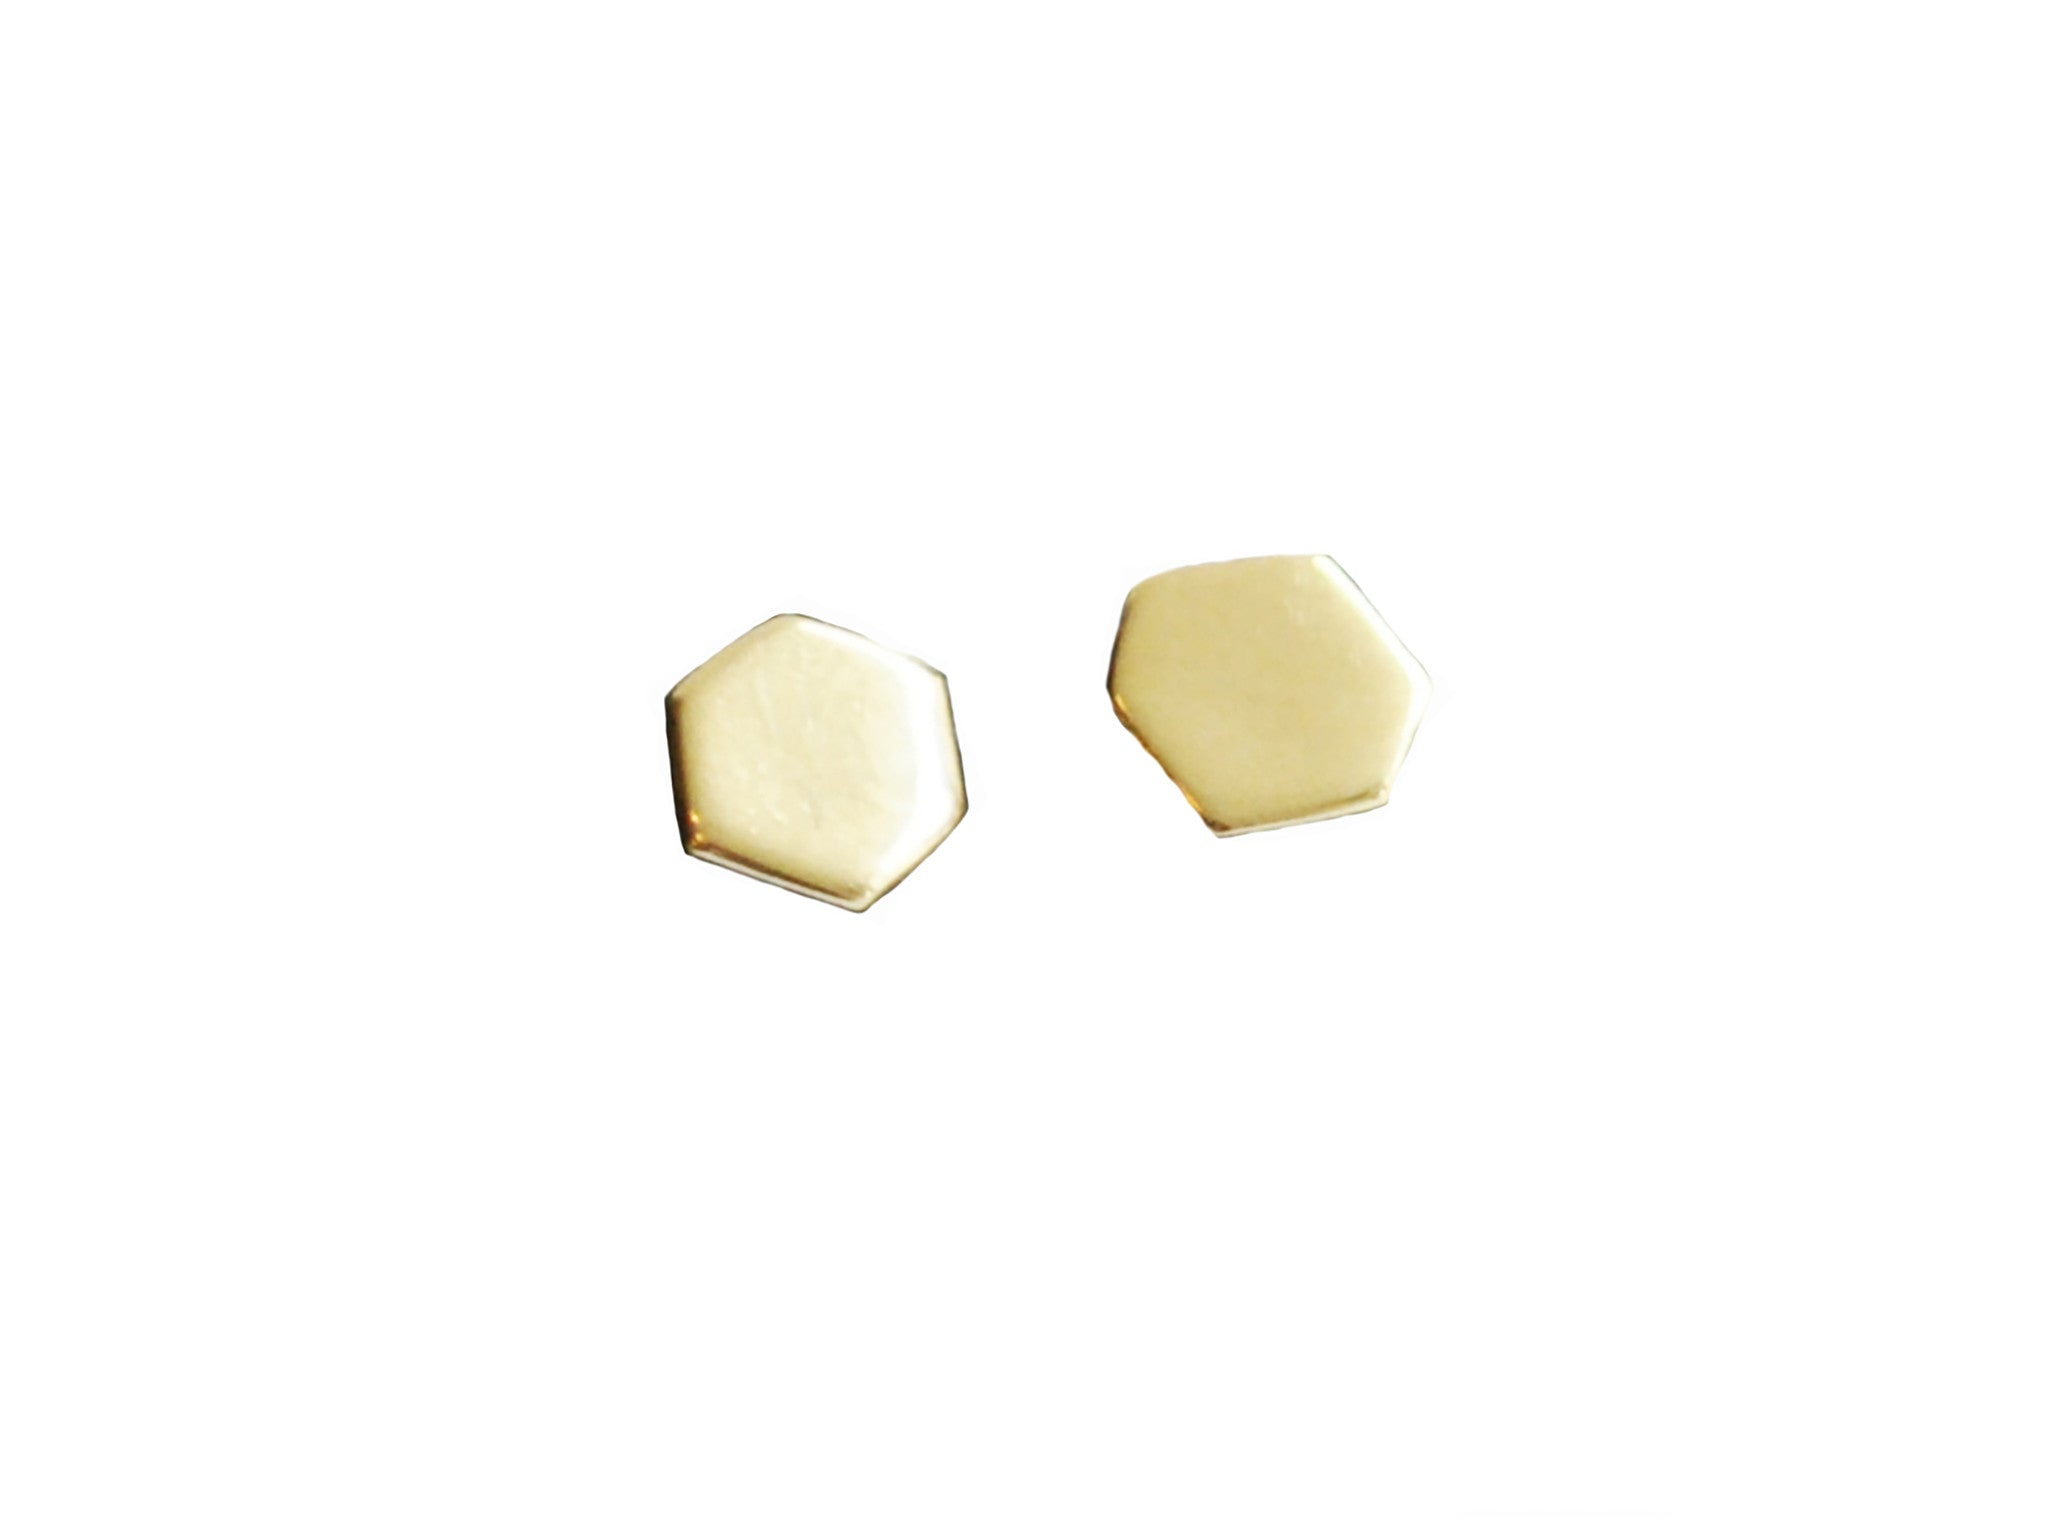 Hexagon Shape Stud Earrings Wendy Nichol Fine Jewelry Designer solid 14k Gold Yellow Rose White Sterling Silver simple delicate geometric studs Handmade in NYC New York City First Second Ear Hole Piercing Lower Lobe Upper Lobe studs